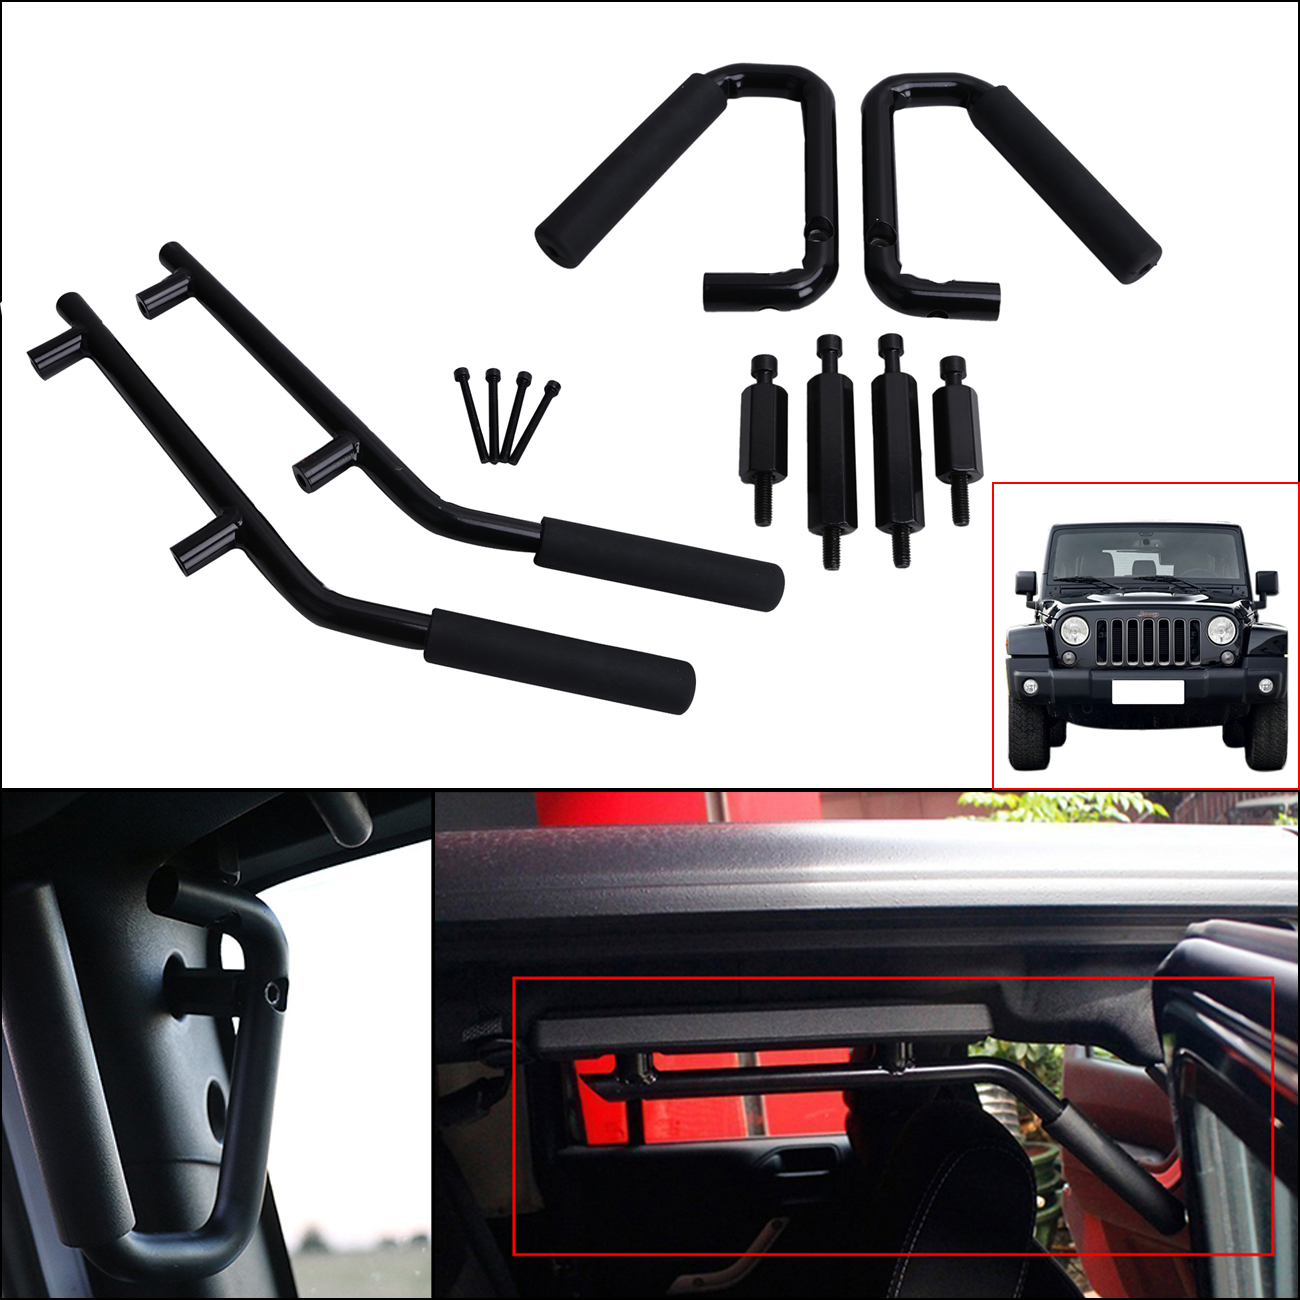 For Jeep Wrangler JK Anti Rust Hard Steel Front & Rear Grab Handle Roll Bar Grab Armrest 2007-2017 Modified Parts #CE0 2 pcs black car styling parts front rear grab bar handles for jeep wrangler jk 2007 2017 new fashion upgraded